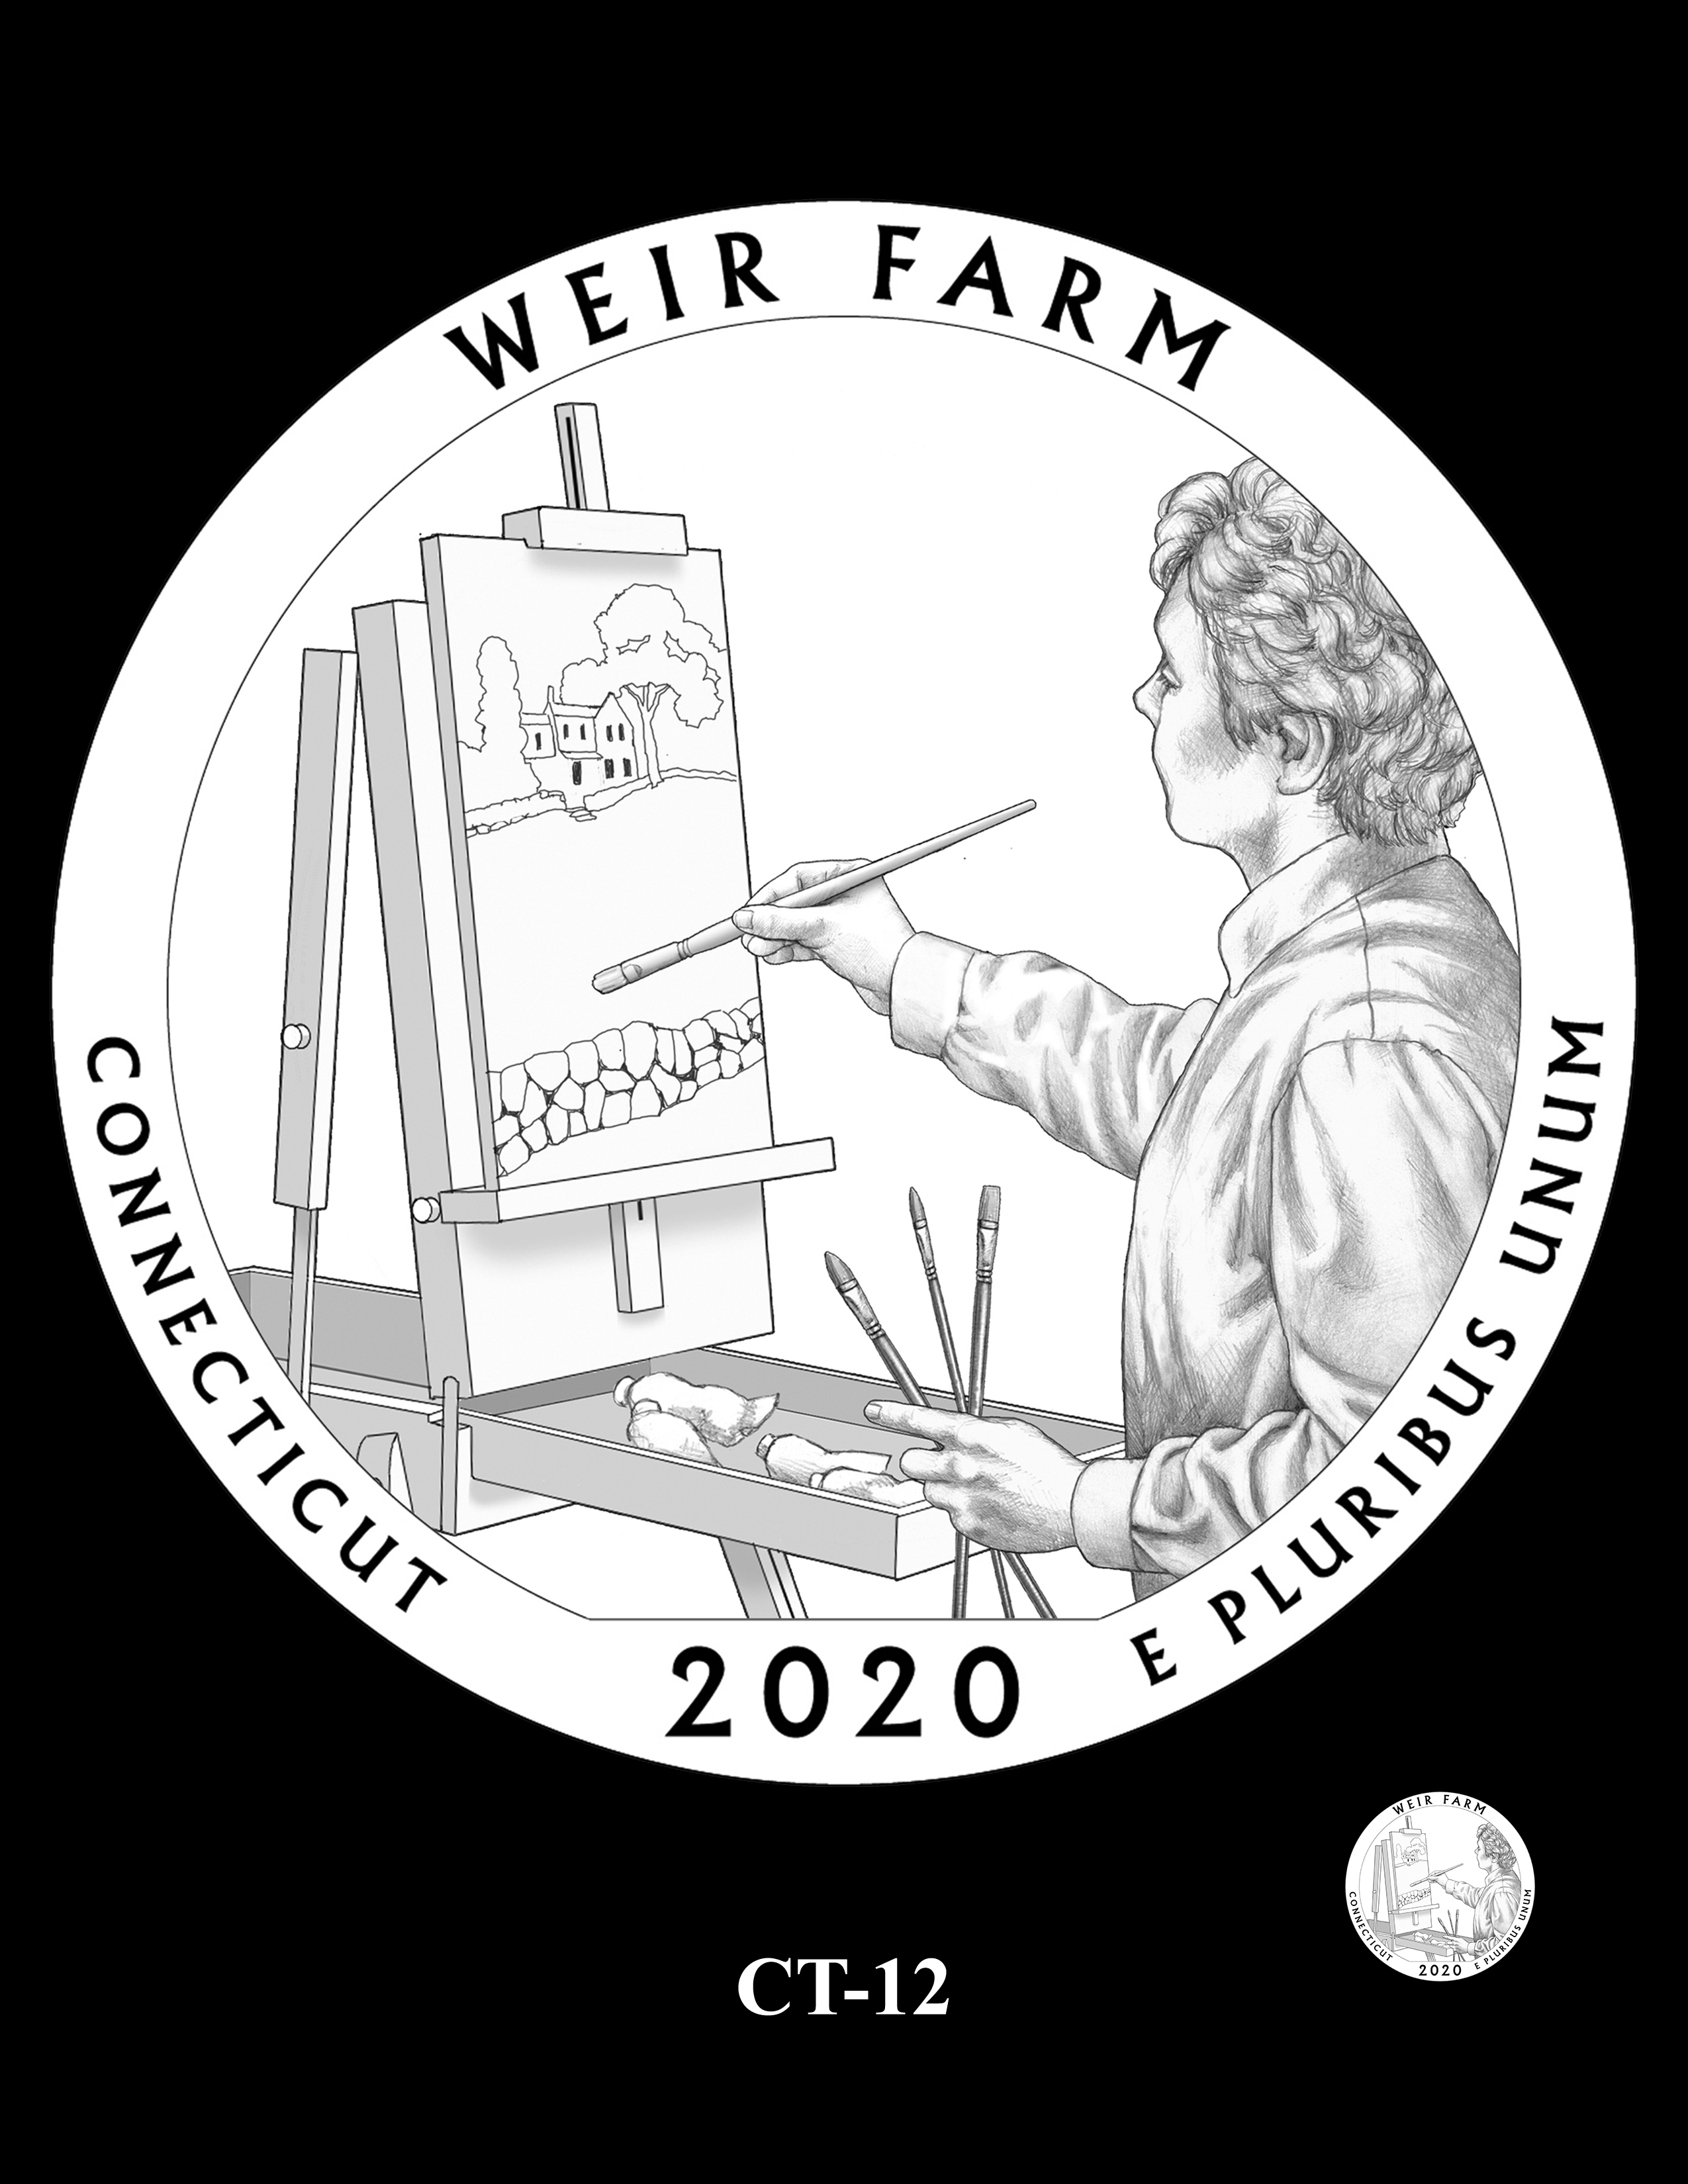 CT-12 -- 2020 America the Beautiful Quarters® Program